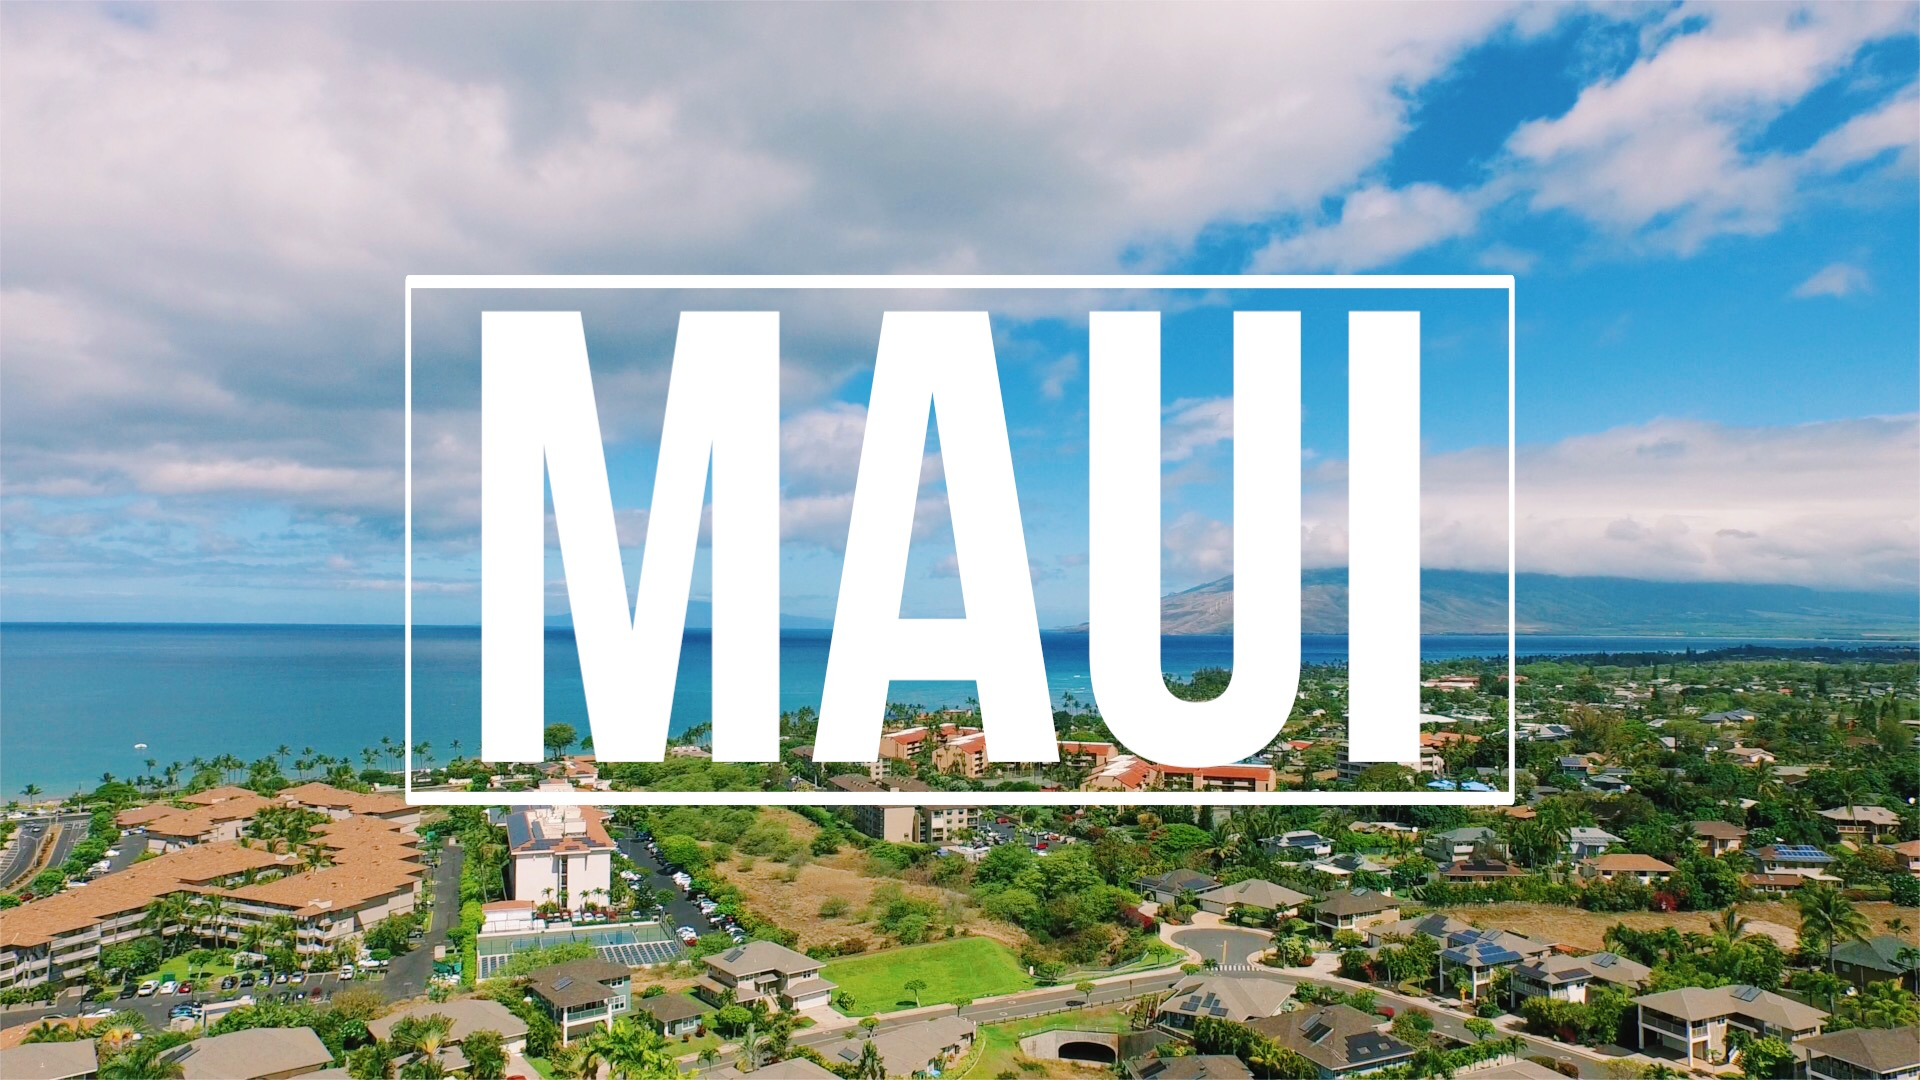 Our Favorite Things to Do & Eat On Maui